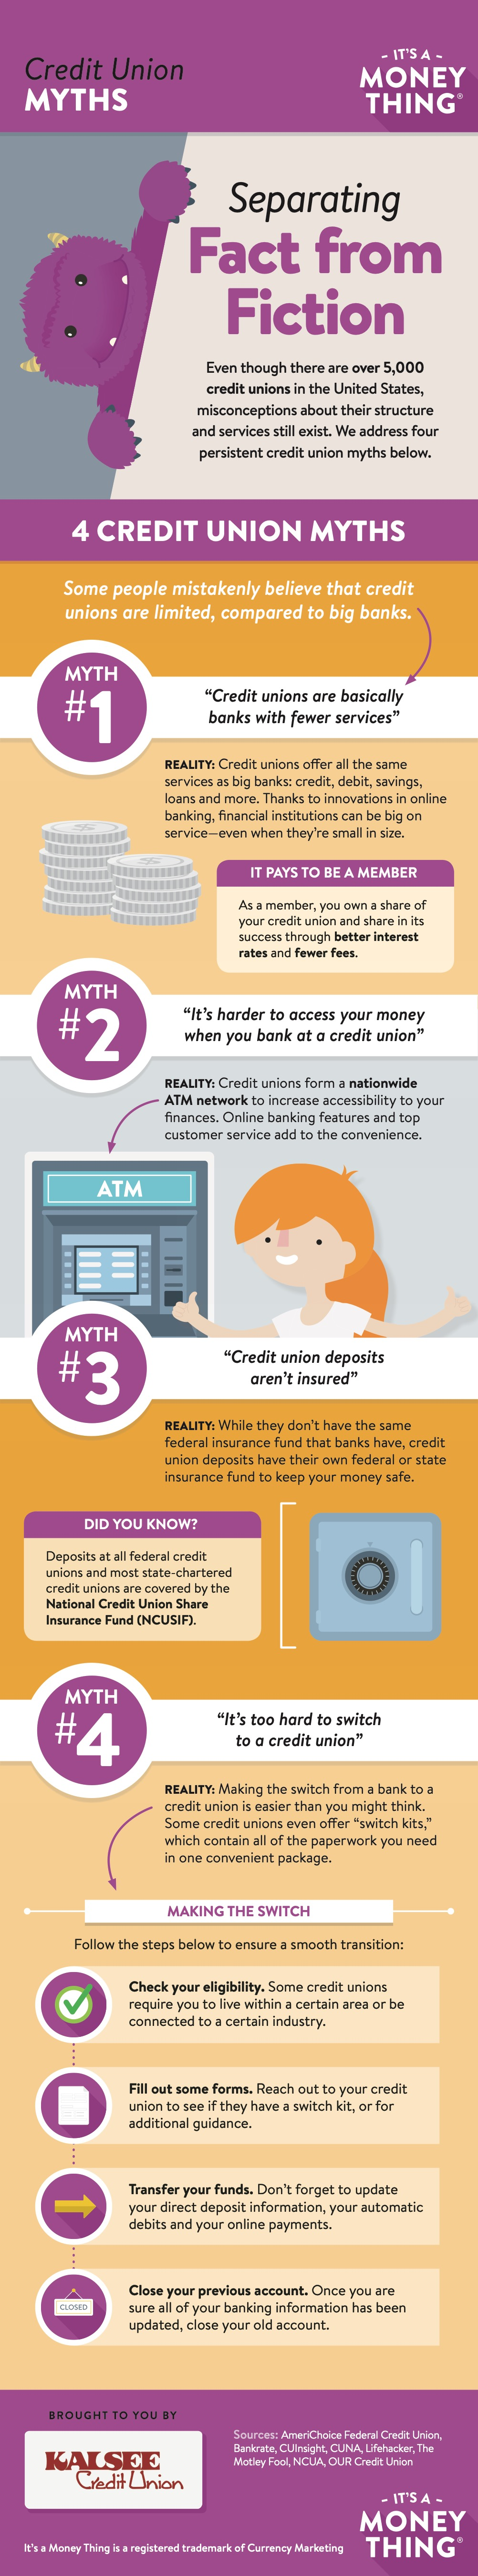 Credit union myths infographic, click for transcription